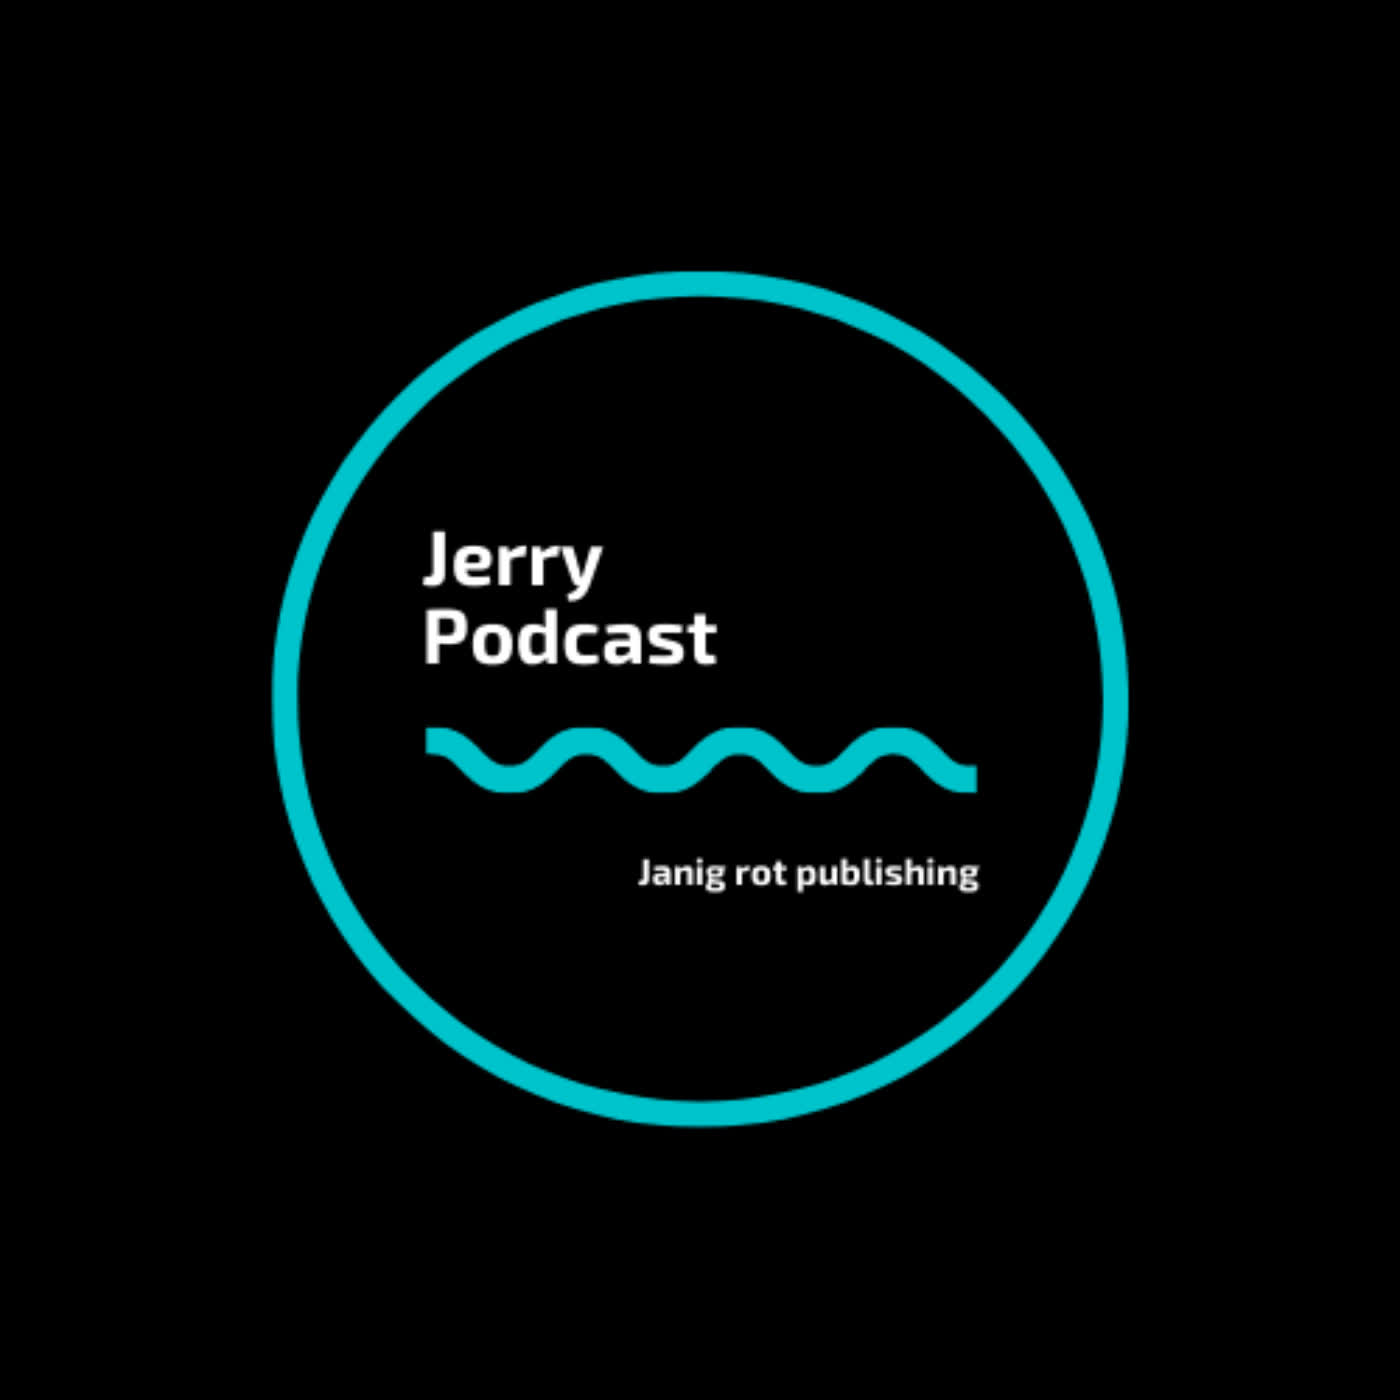 Jerry Podcast